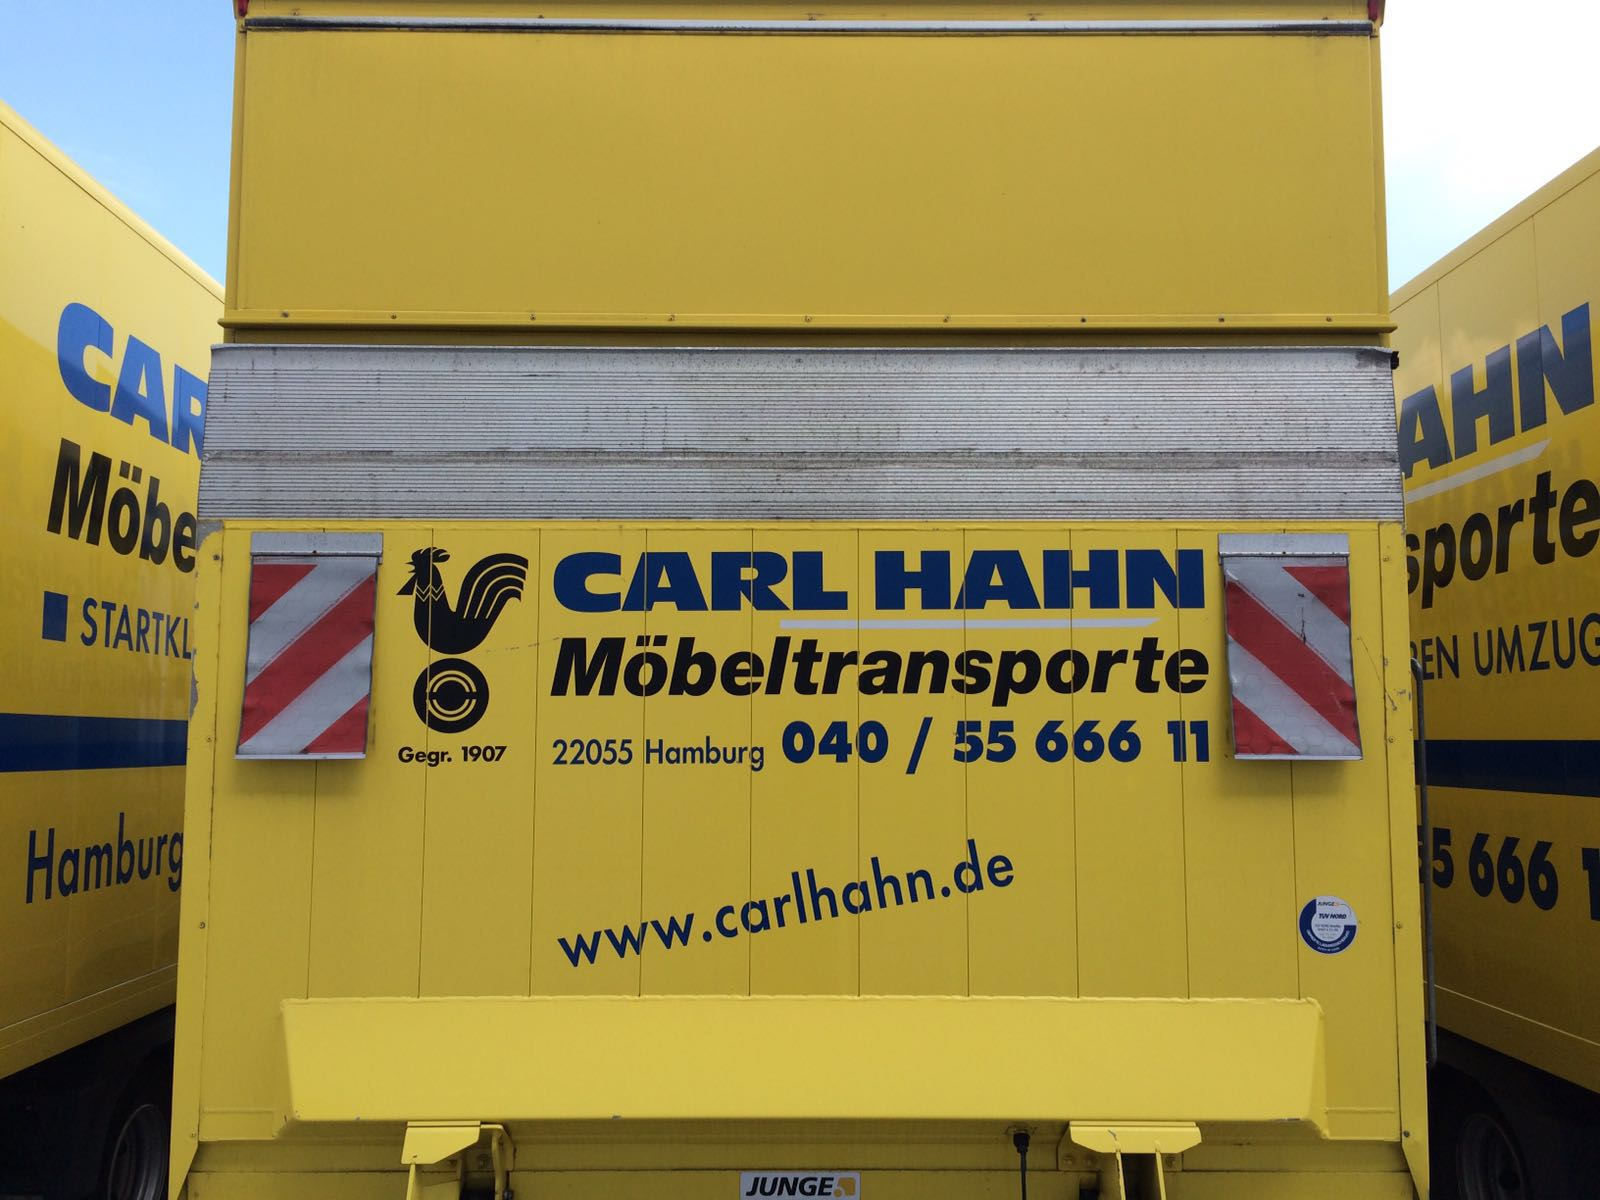 umzug hamburg carl hahn m beltransporte gmbh. Black Bedroom Furniture Sets. Home Design Ideas